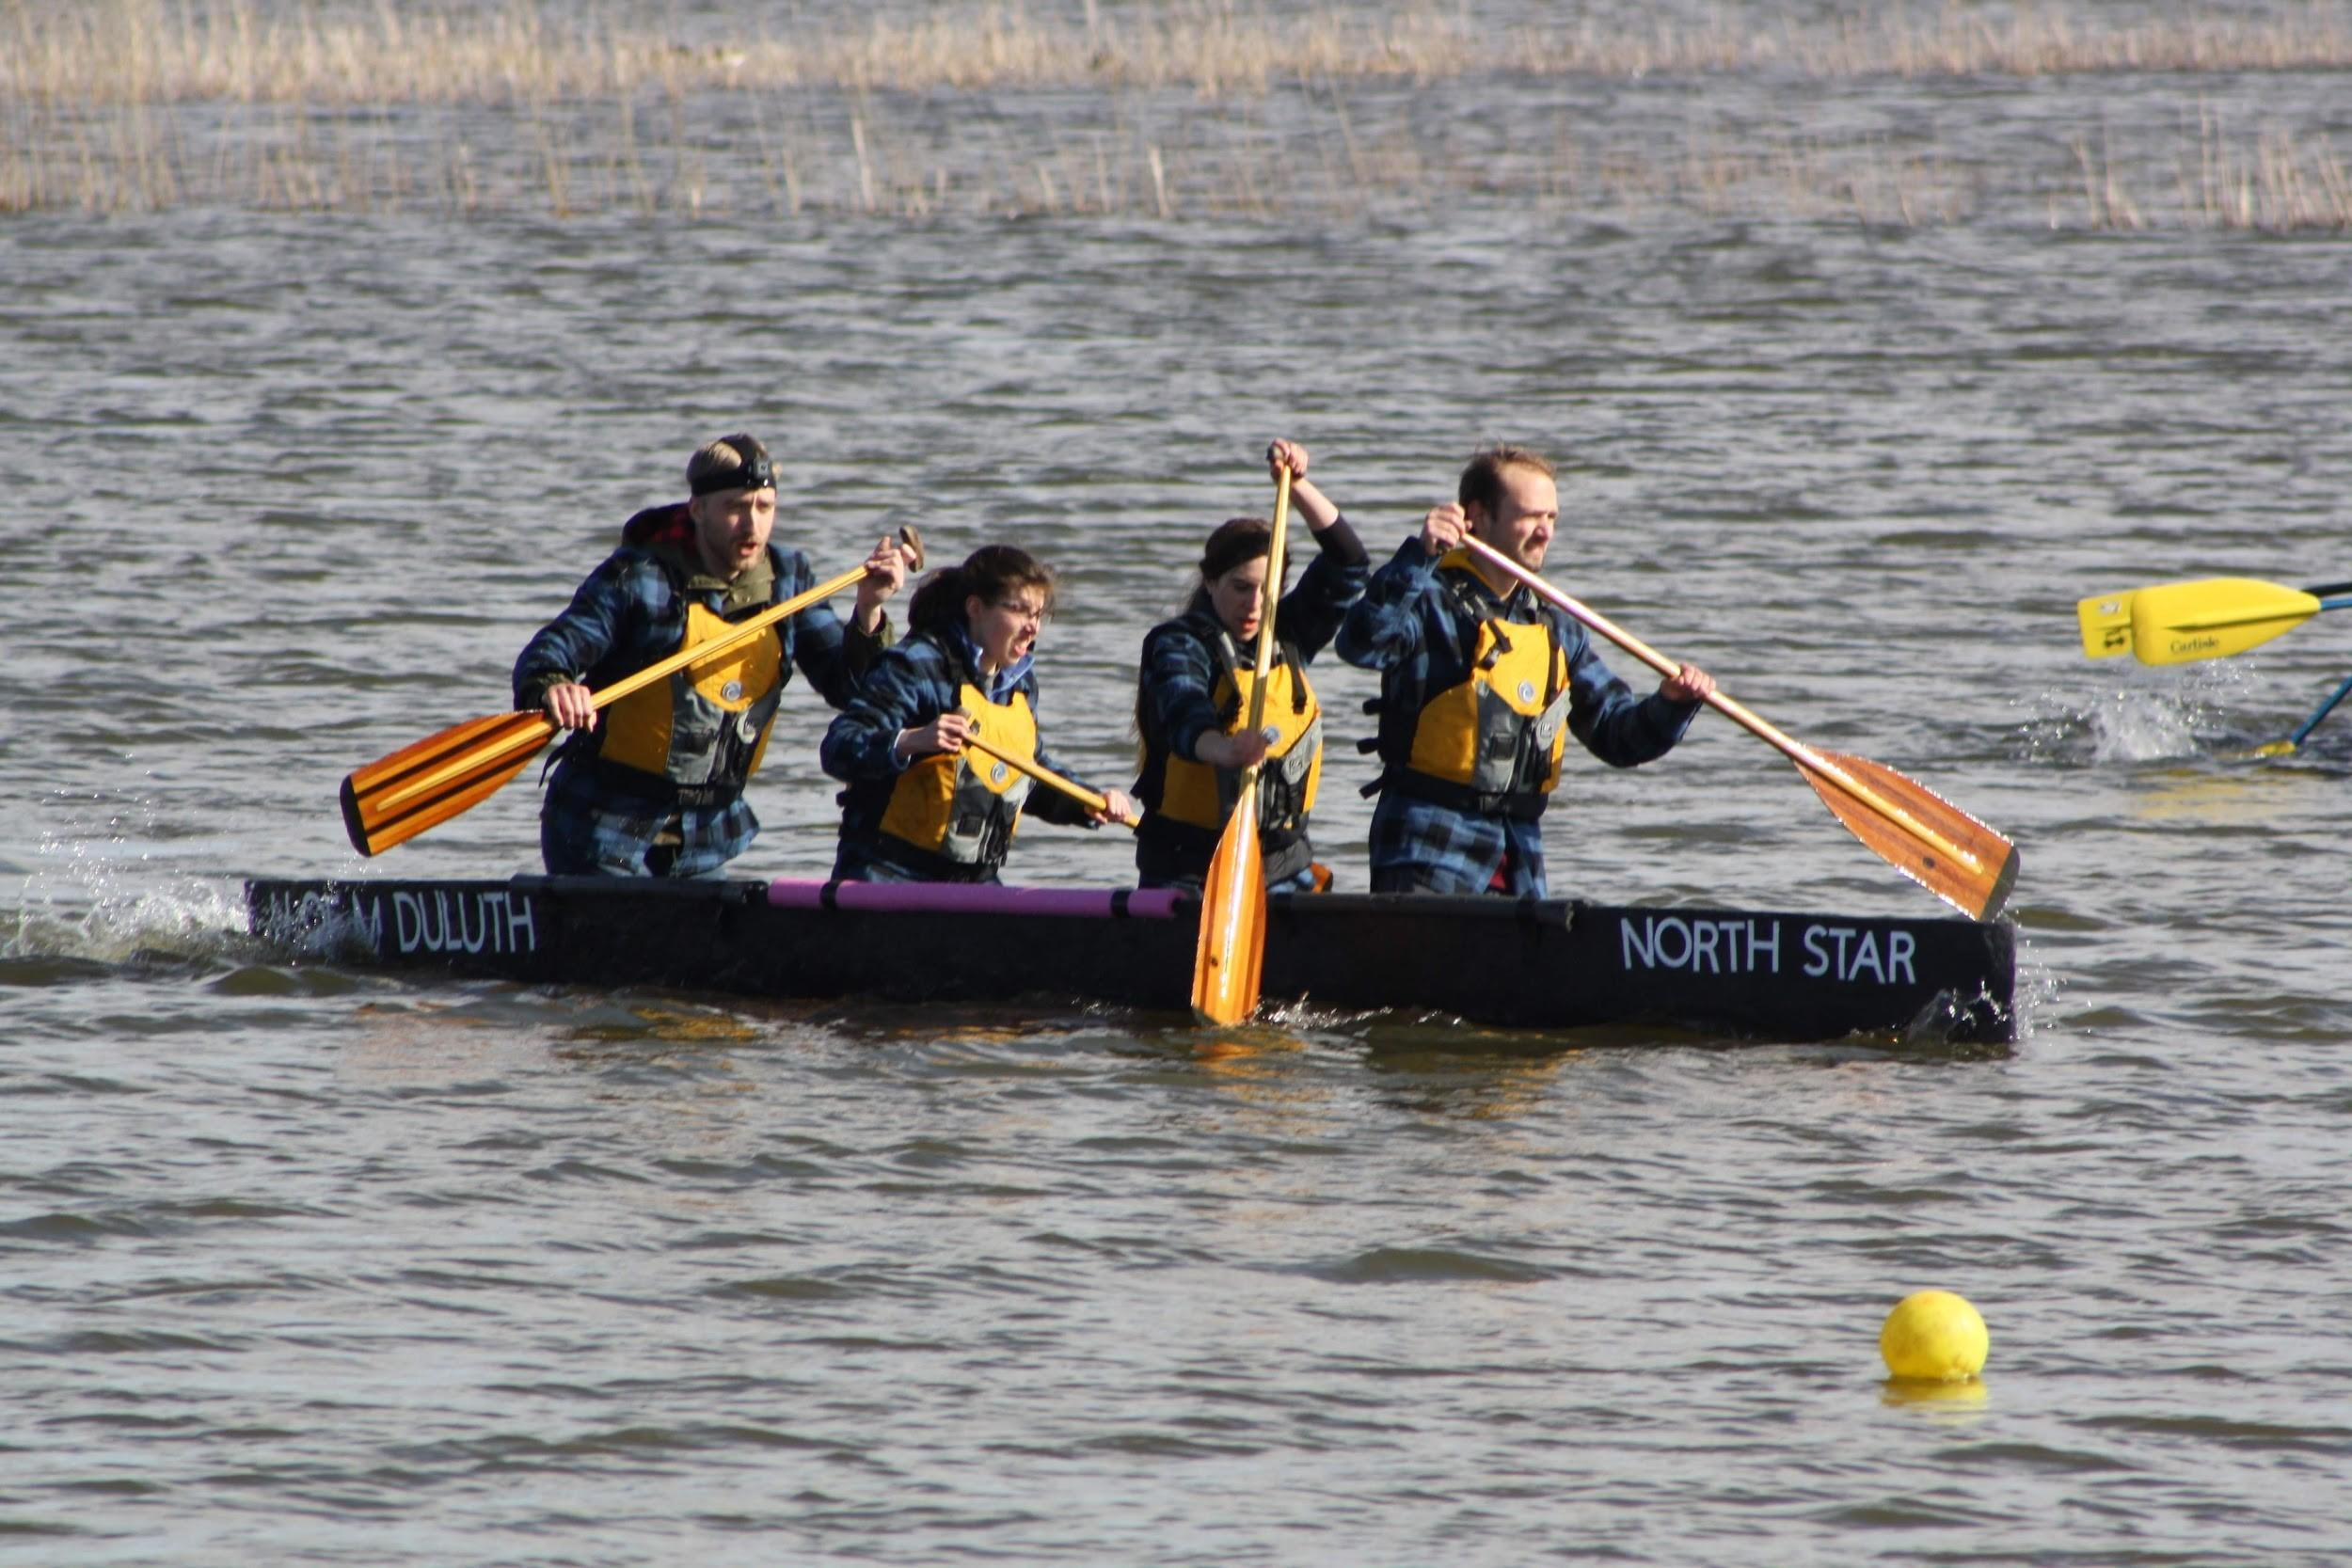 4 students rowing the concrete canoe that is floating in the water